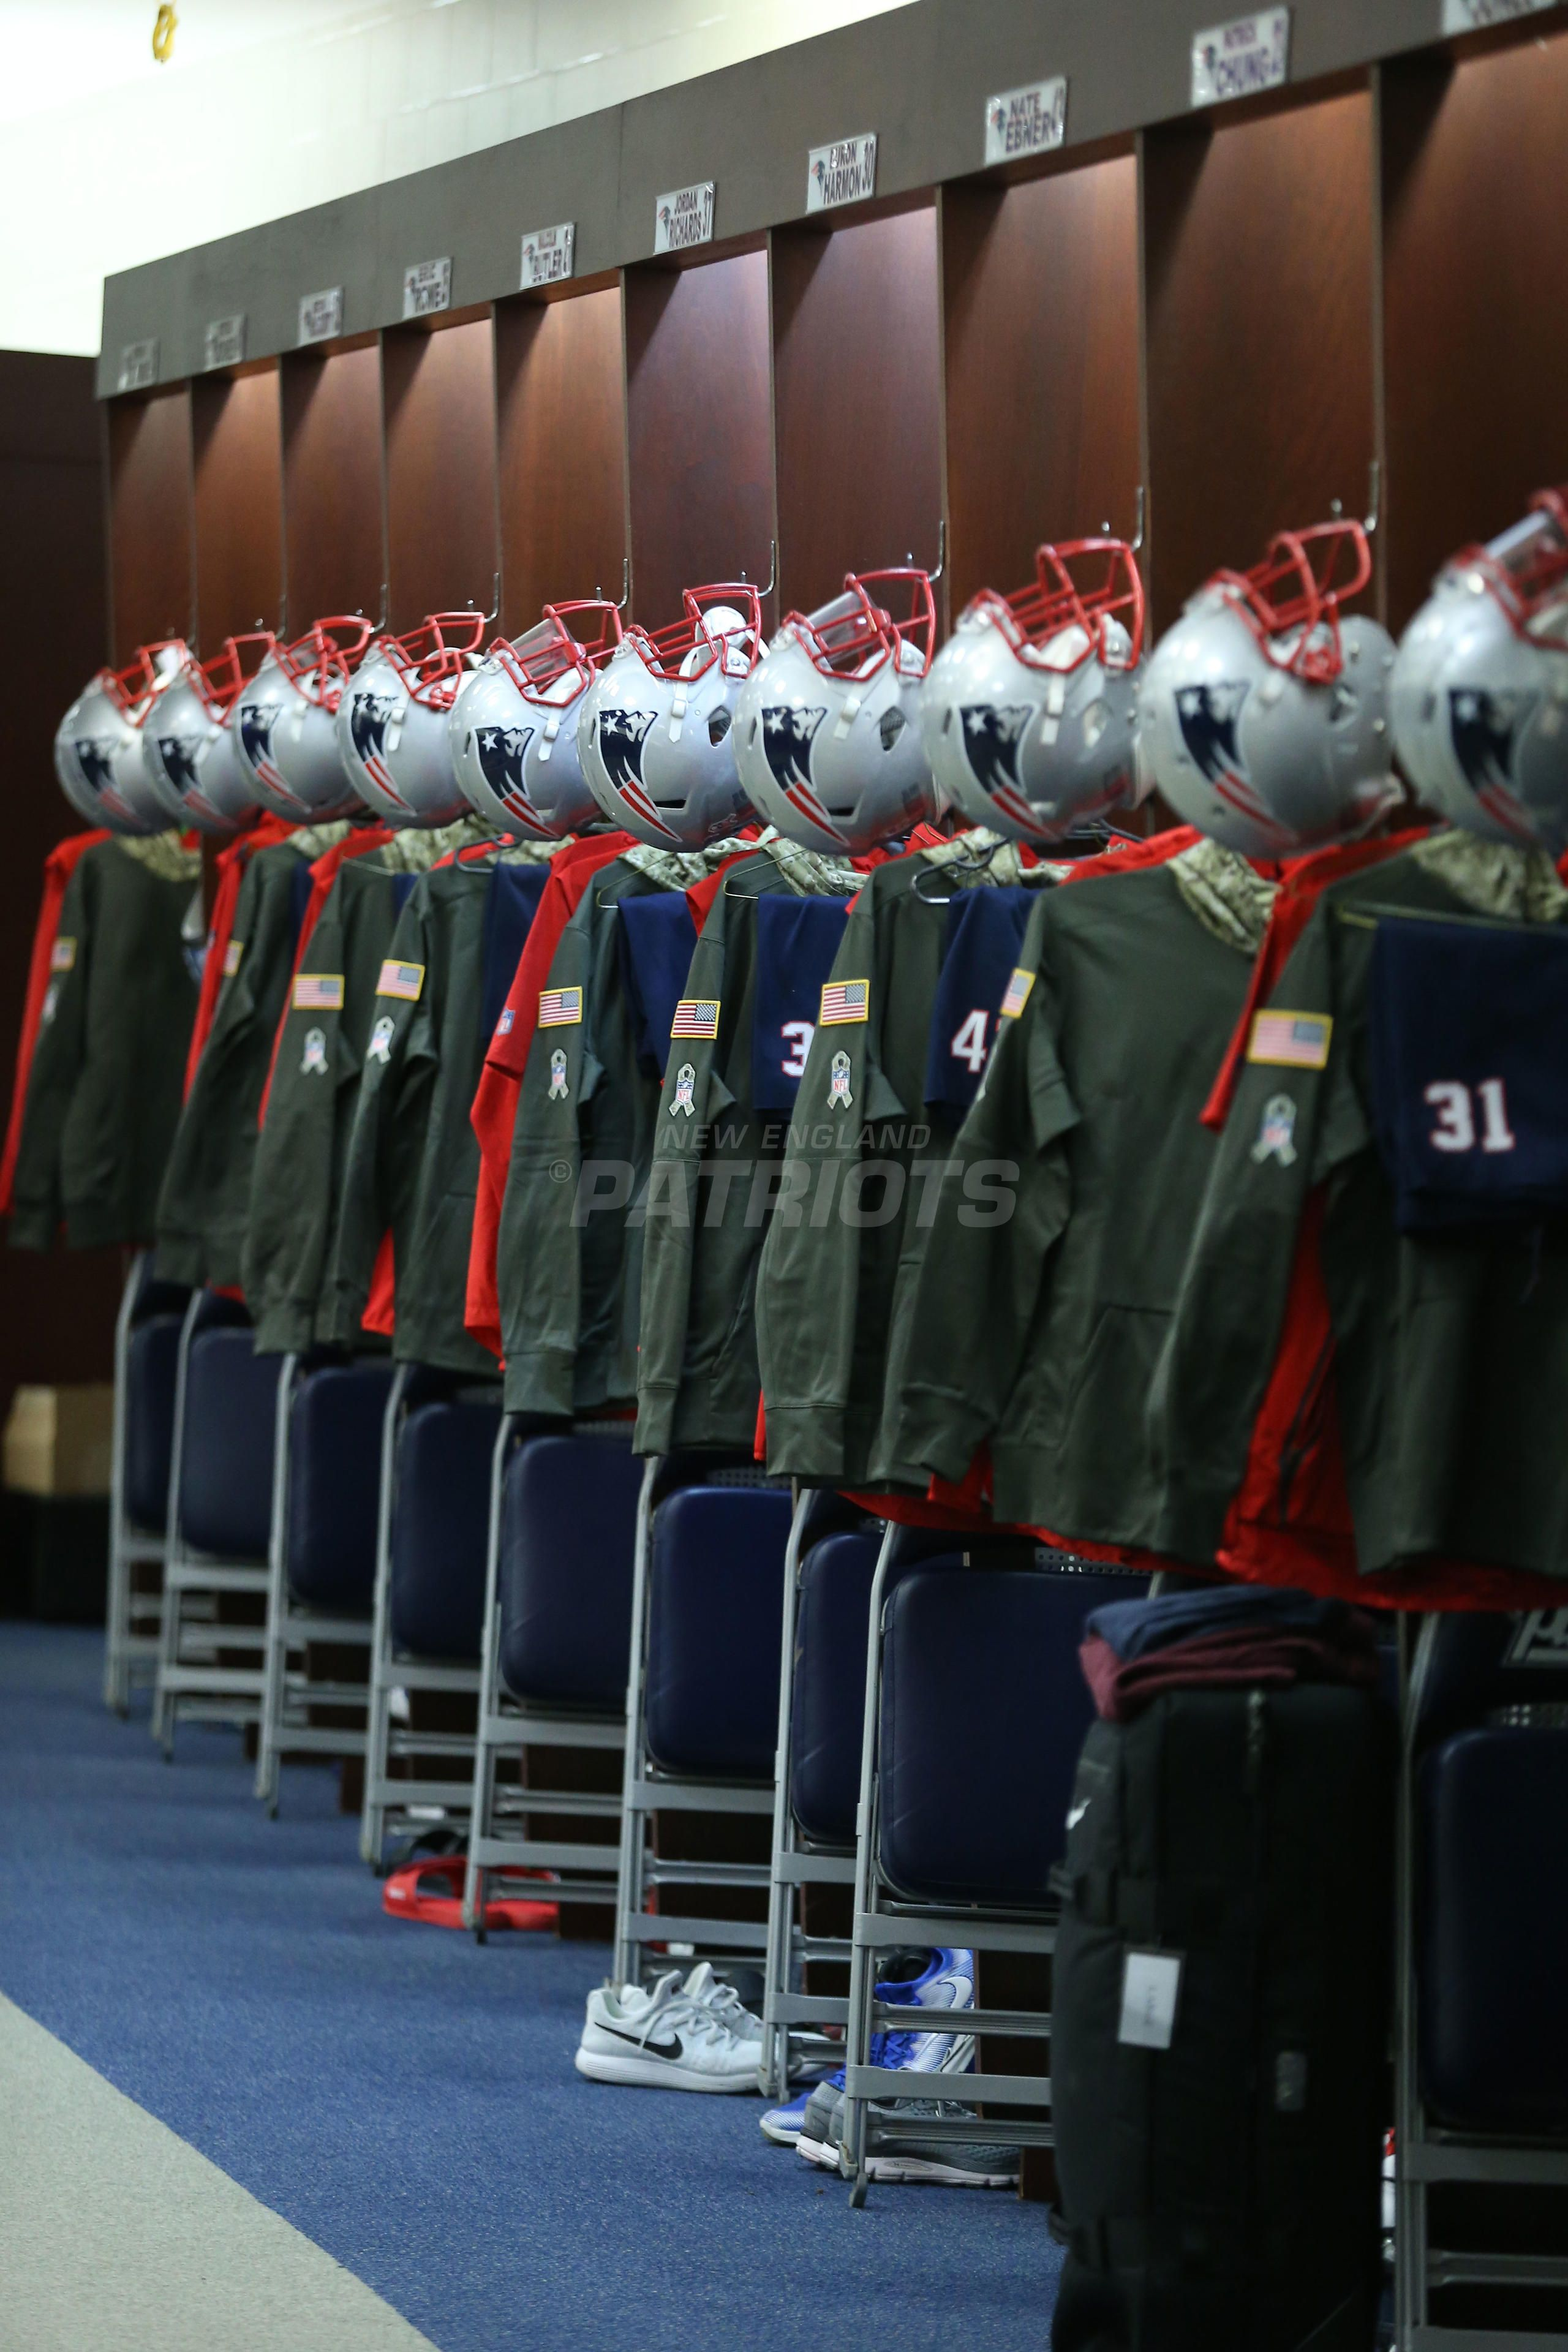 Pregame Inside The Patriots Locker Room And Player Arrivals 11 26 Locker Room Lockers Patriots